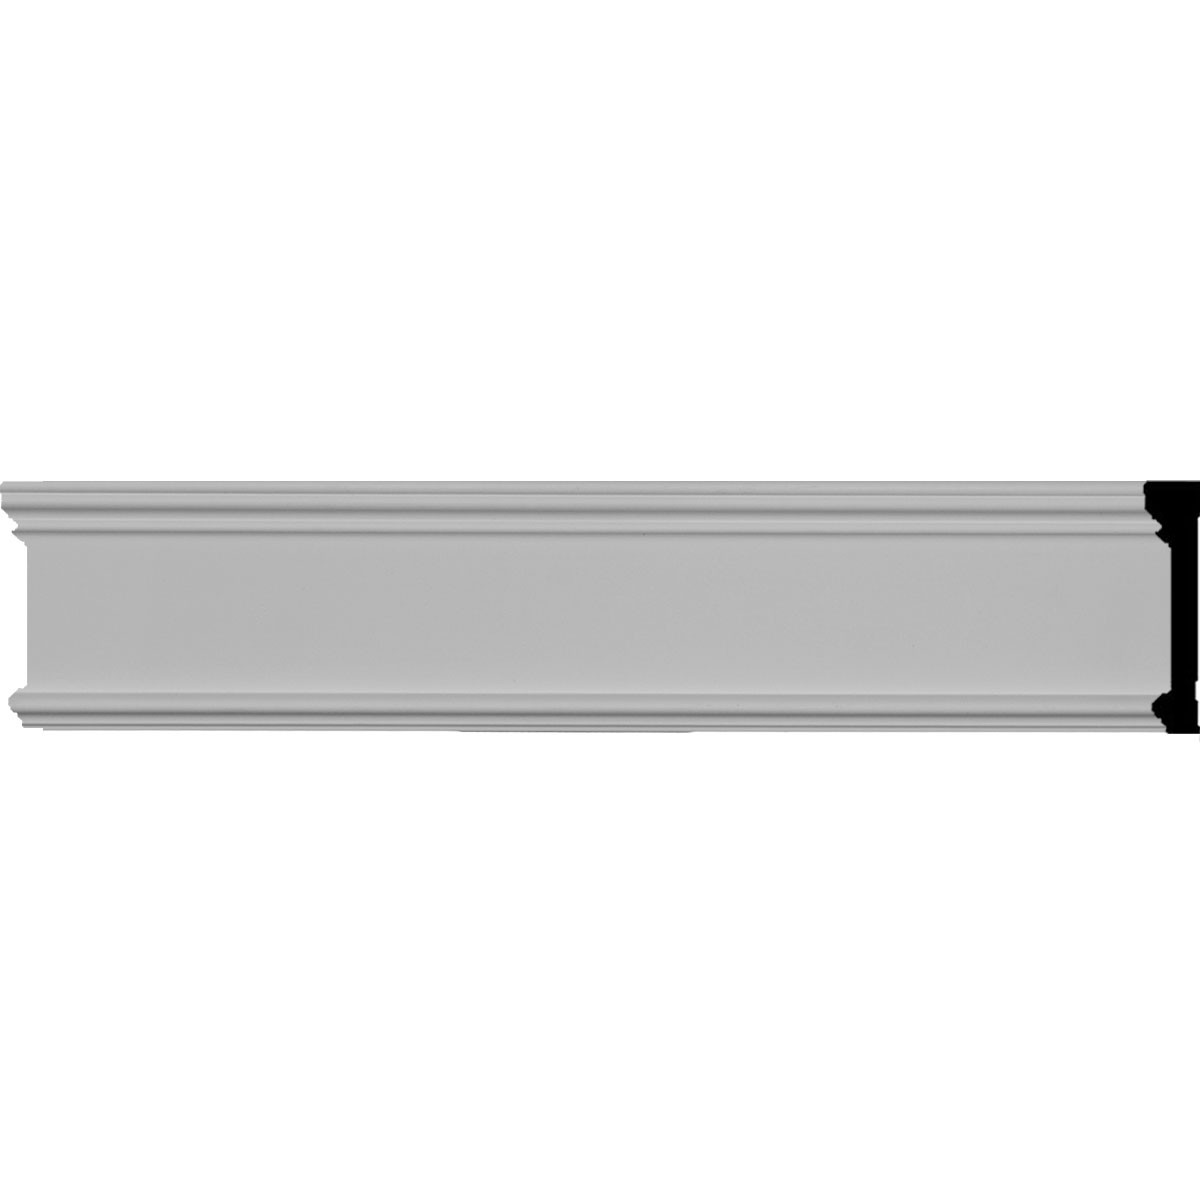 """EM-PIR03X00BP - 3 1/8""""H x 5/8""""P x 96""""L Pierced Moulding Backplate, fits Pierced Moulding Heights 2"""" and under"""